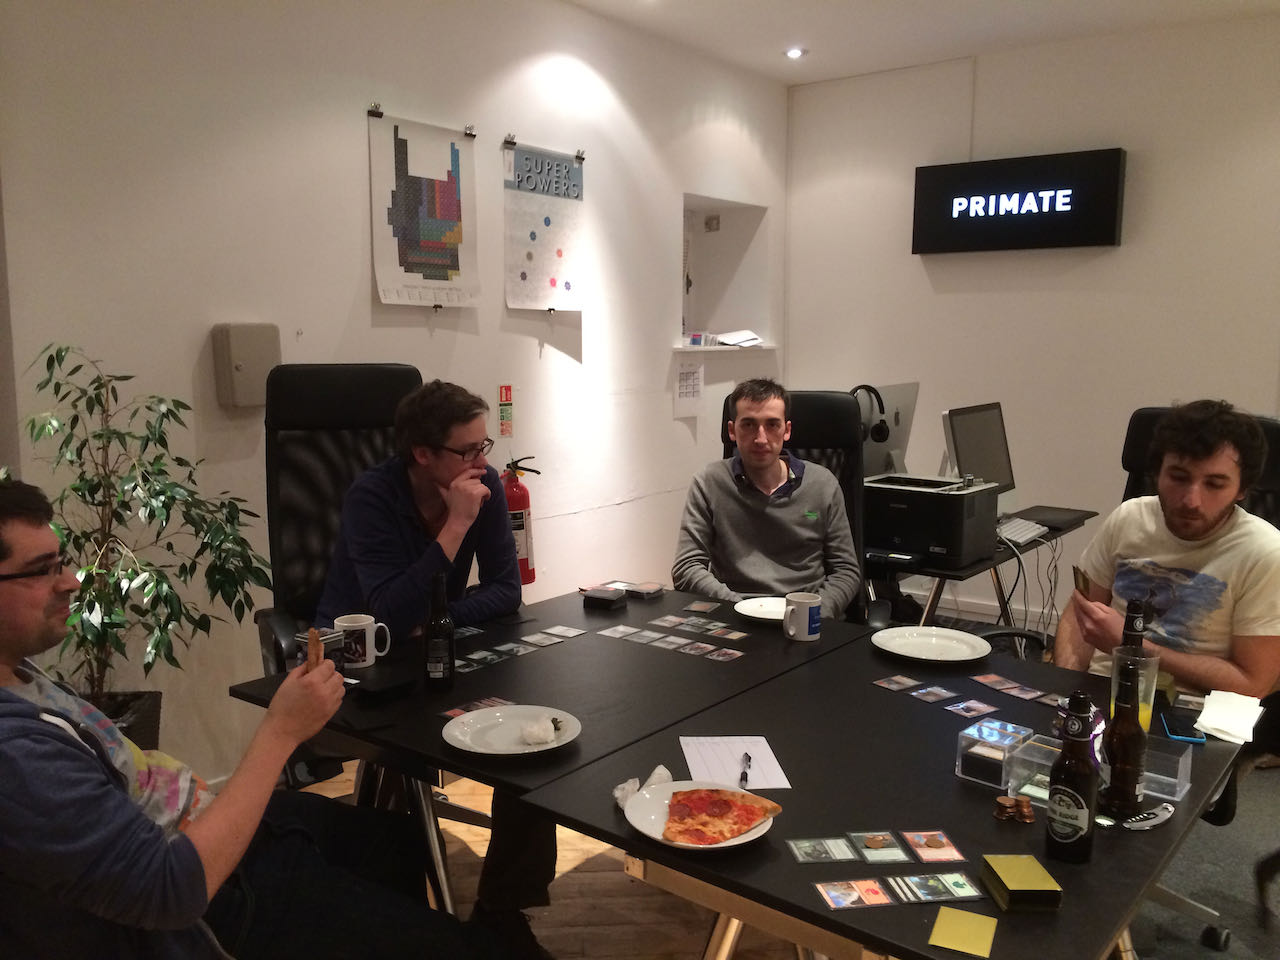 The team playing Magic the Gathering